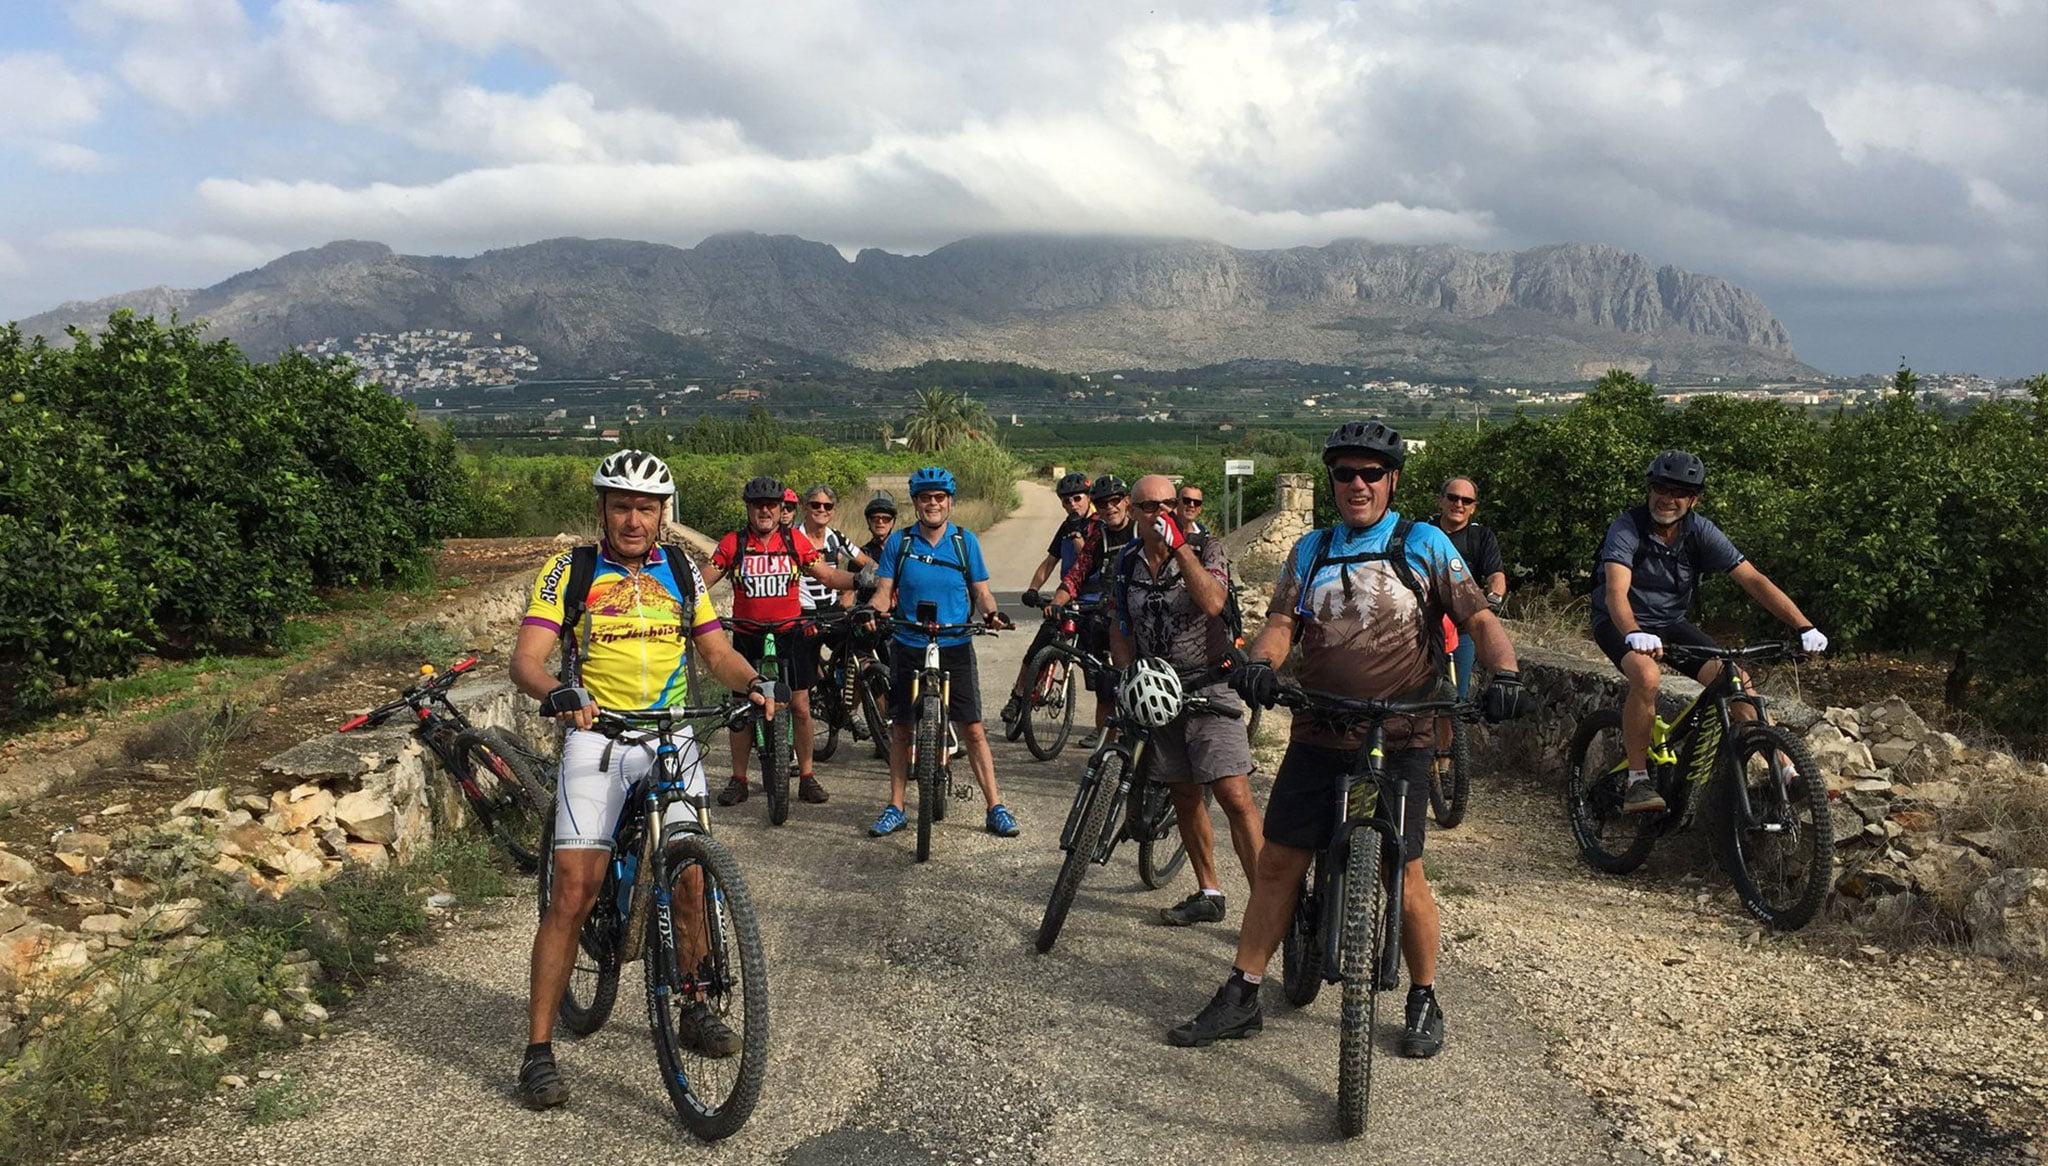 Routes from Saturday to Saturday by mountain bike through Dénia - Aventura Pata Negra